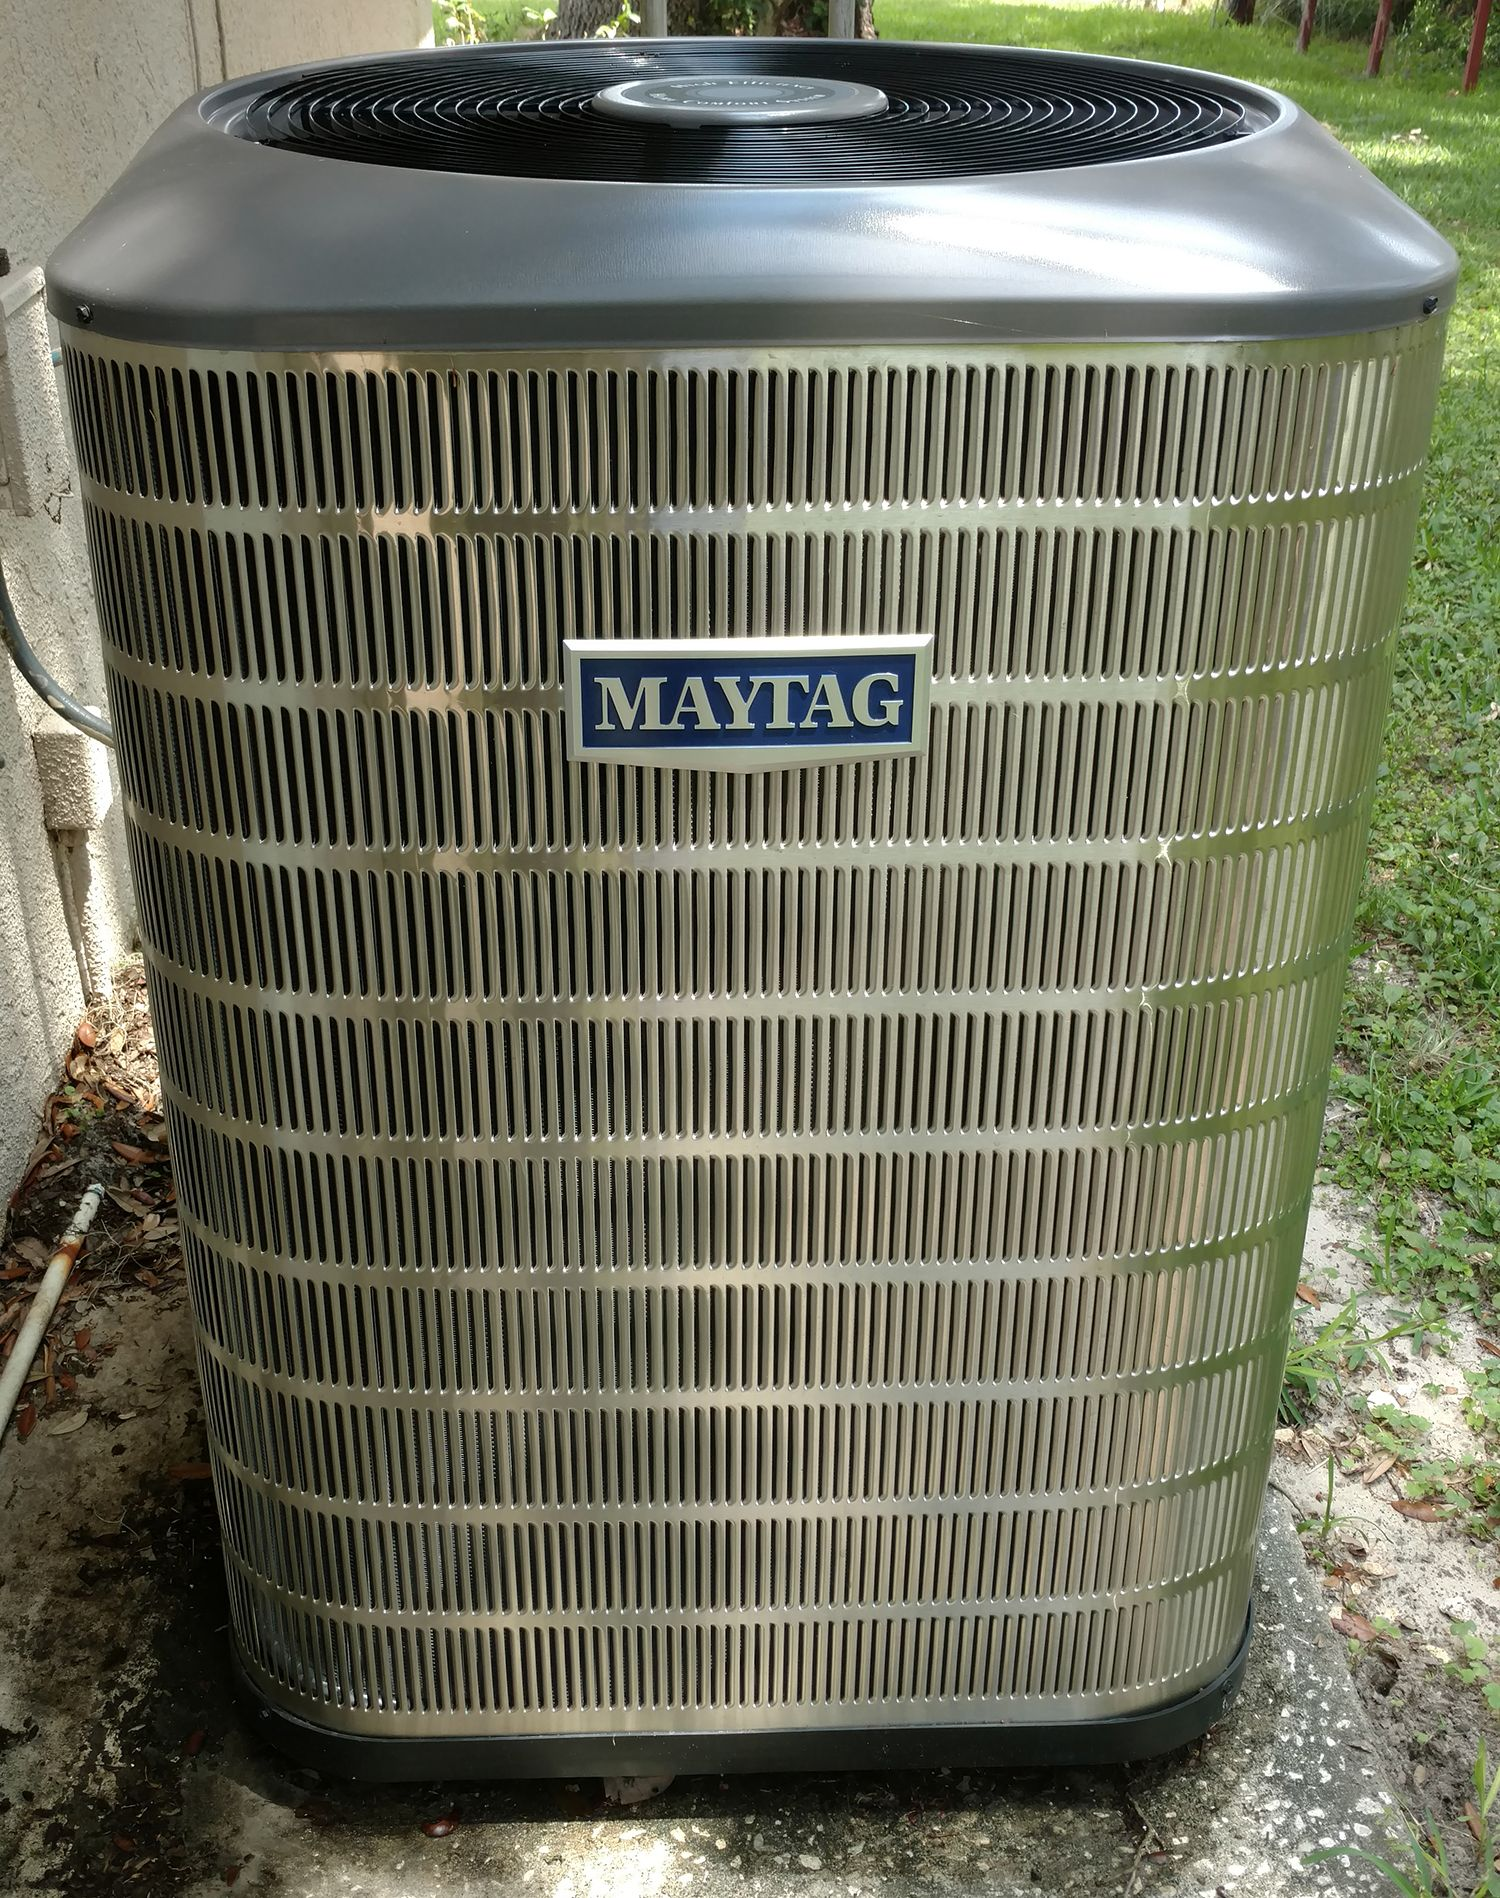 Beautiful Stainless Steel Maytag Air Conditioner Installed By Beacon Services Www Beaconsaves Air Conditioner Installation Maytag Air Conditioner Installation